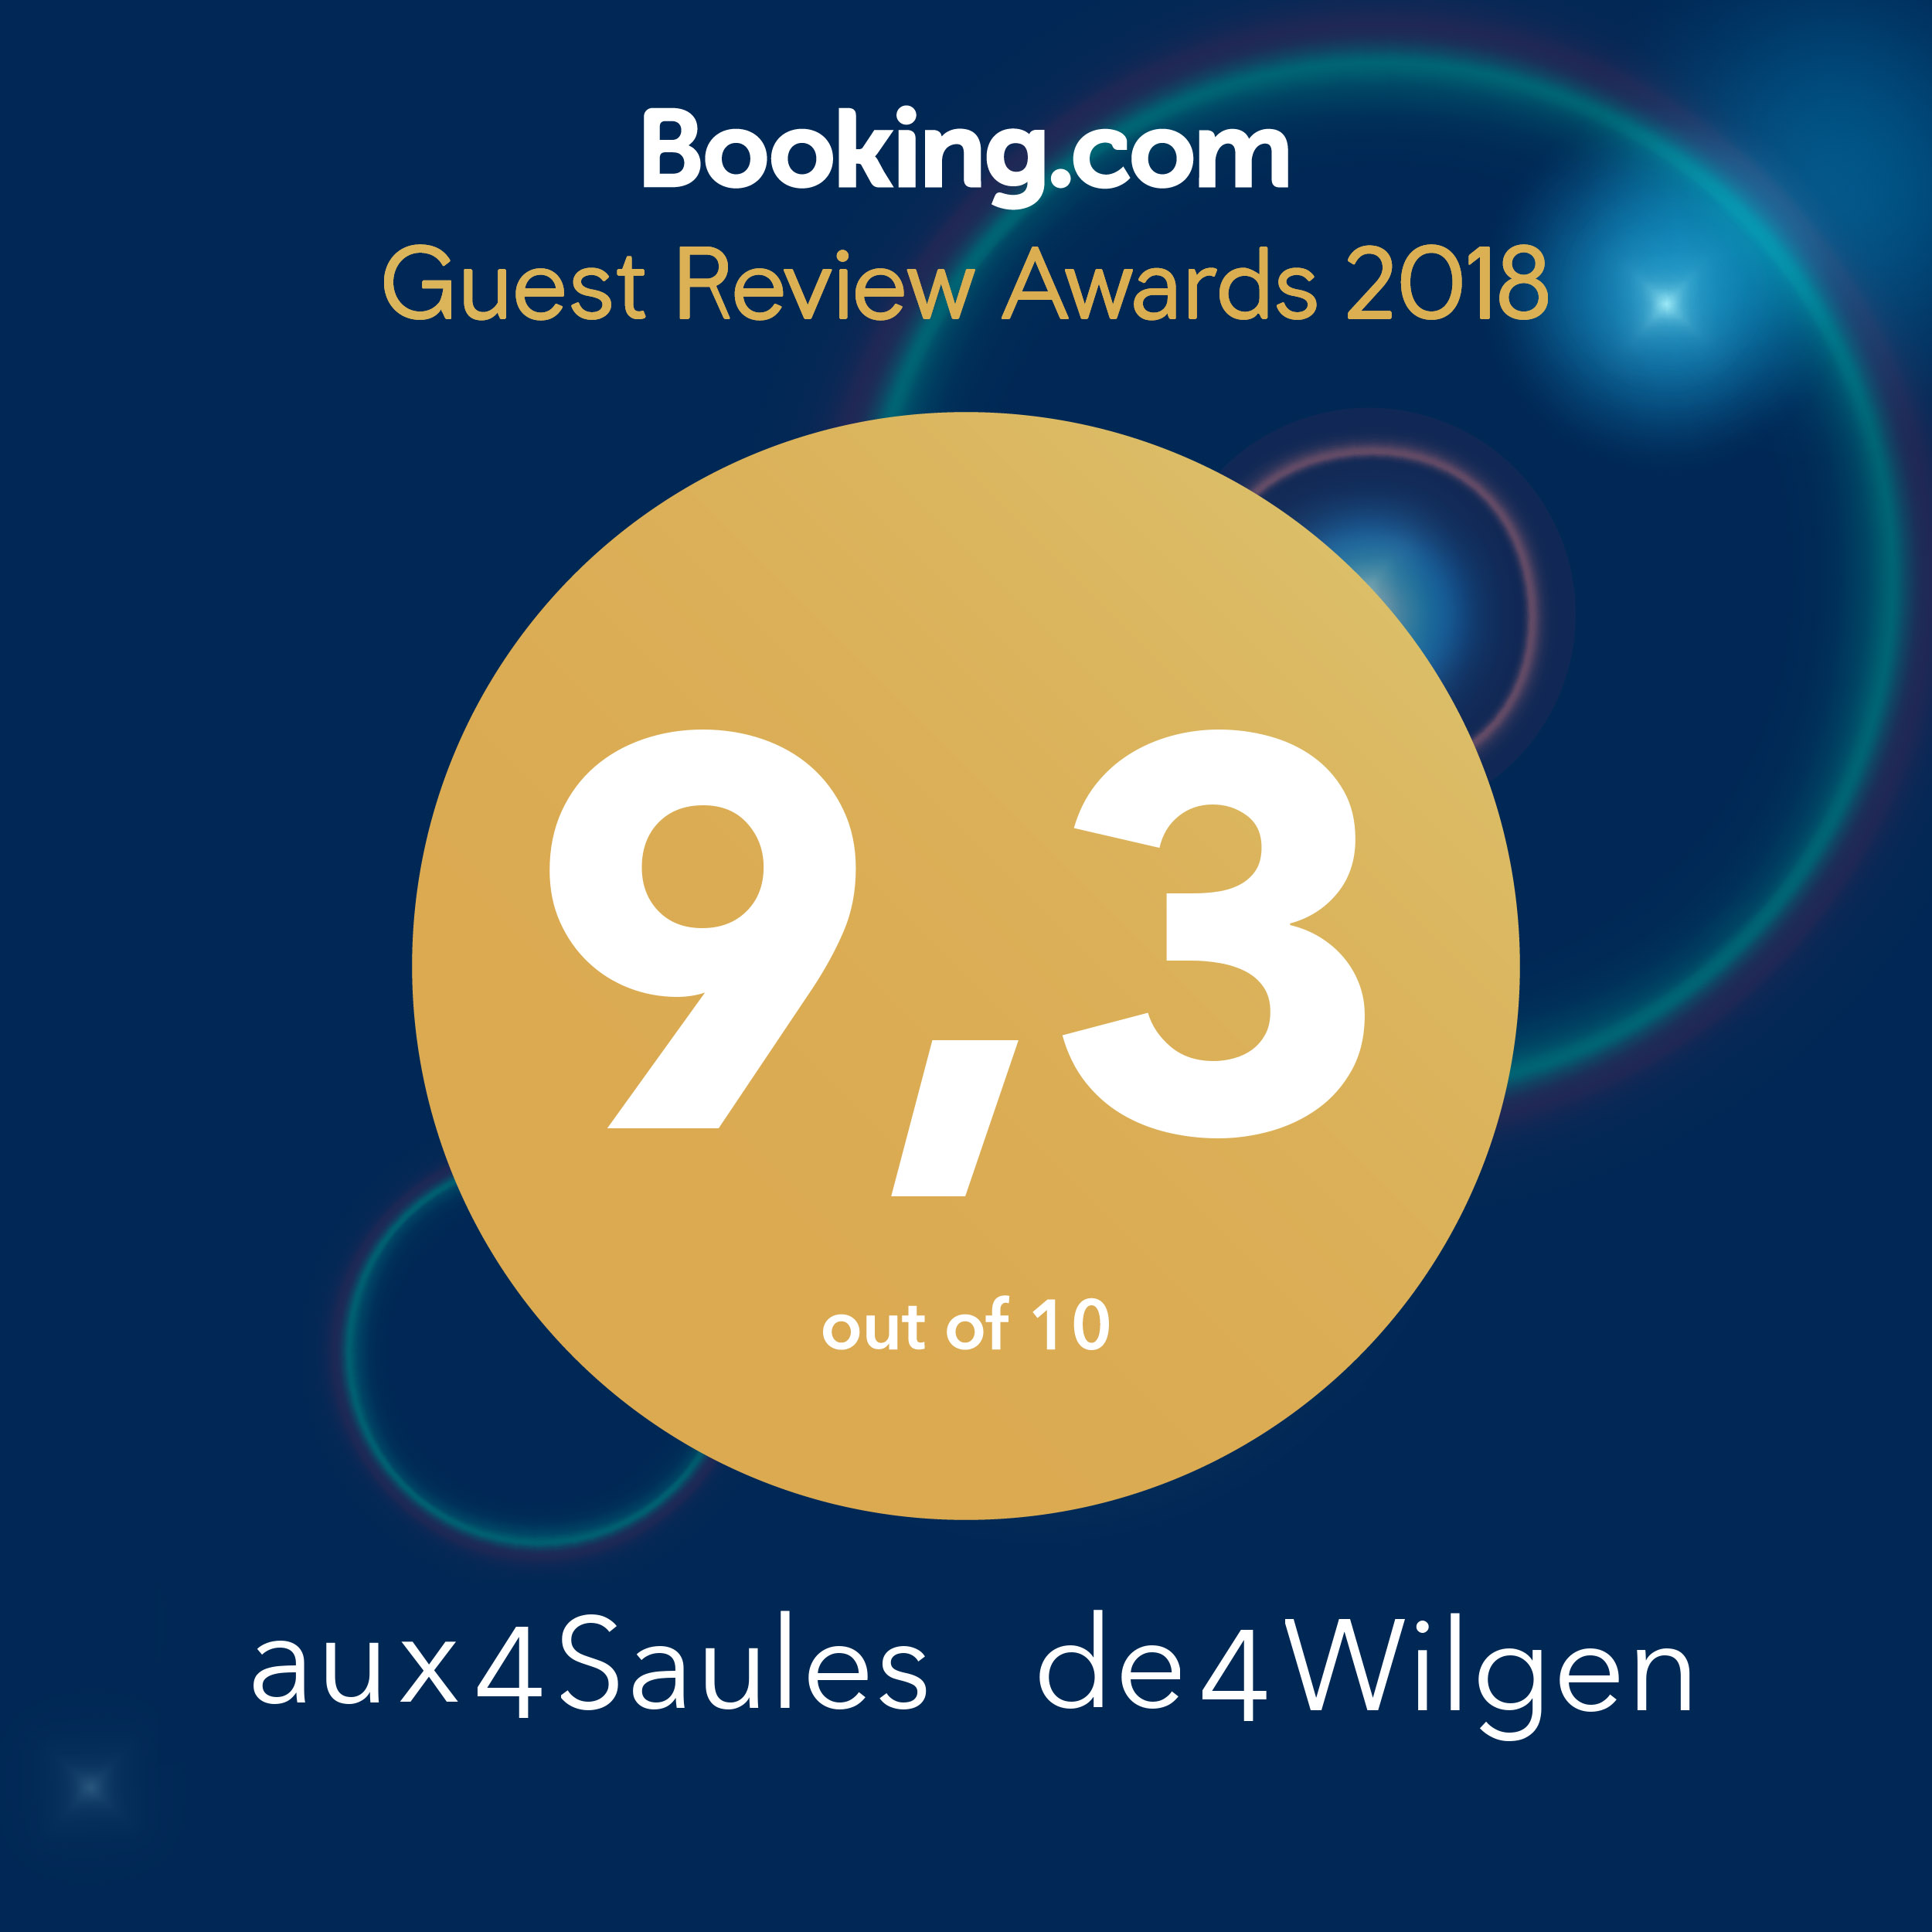 201901 Booking award 93